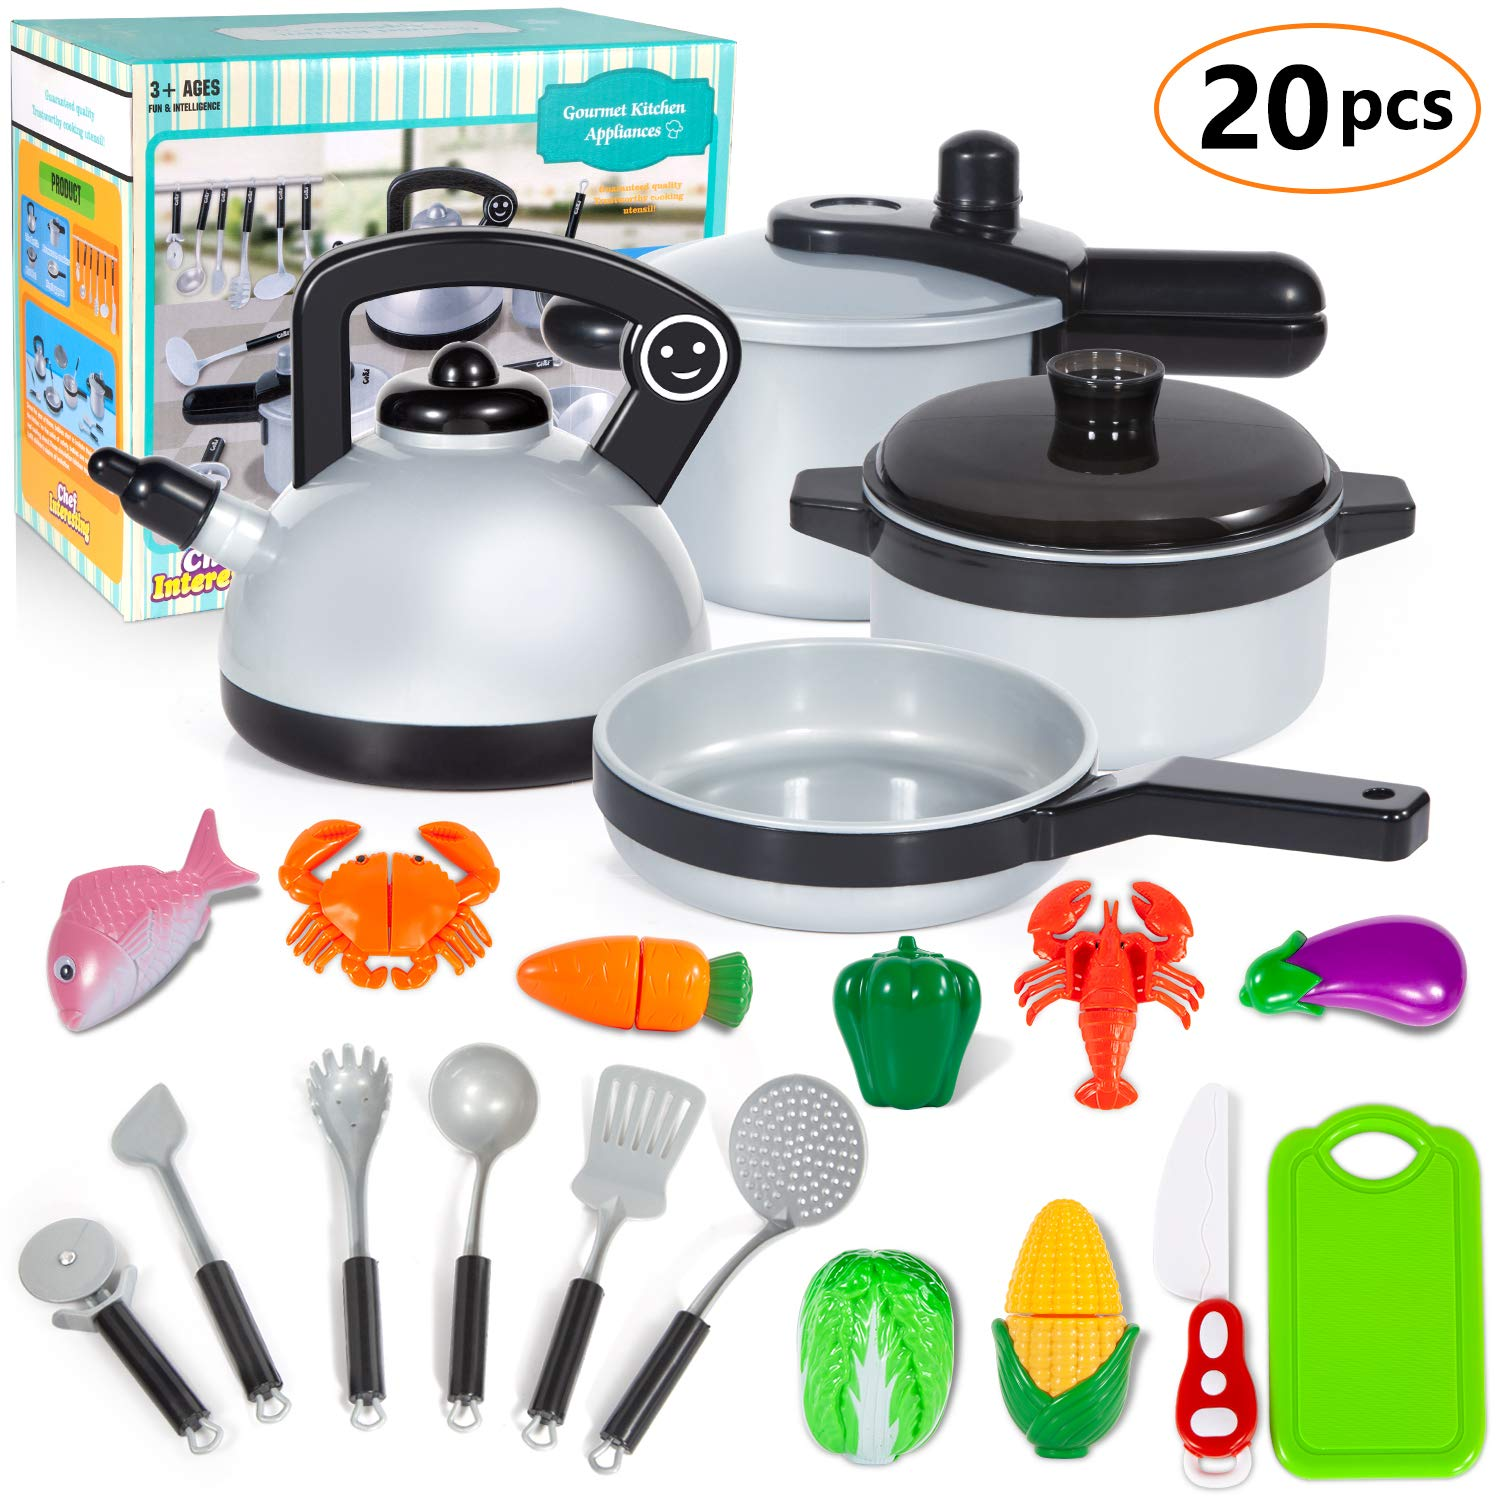 KINFAYV Pretend Play Kitchen Cooking Toy Set - Pretend & Play Cooking Set, Pots and Pans, Cookware Playset, Utensils Toys, Early Age Development Learning Toy Gift for 3 Up Years Old